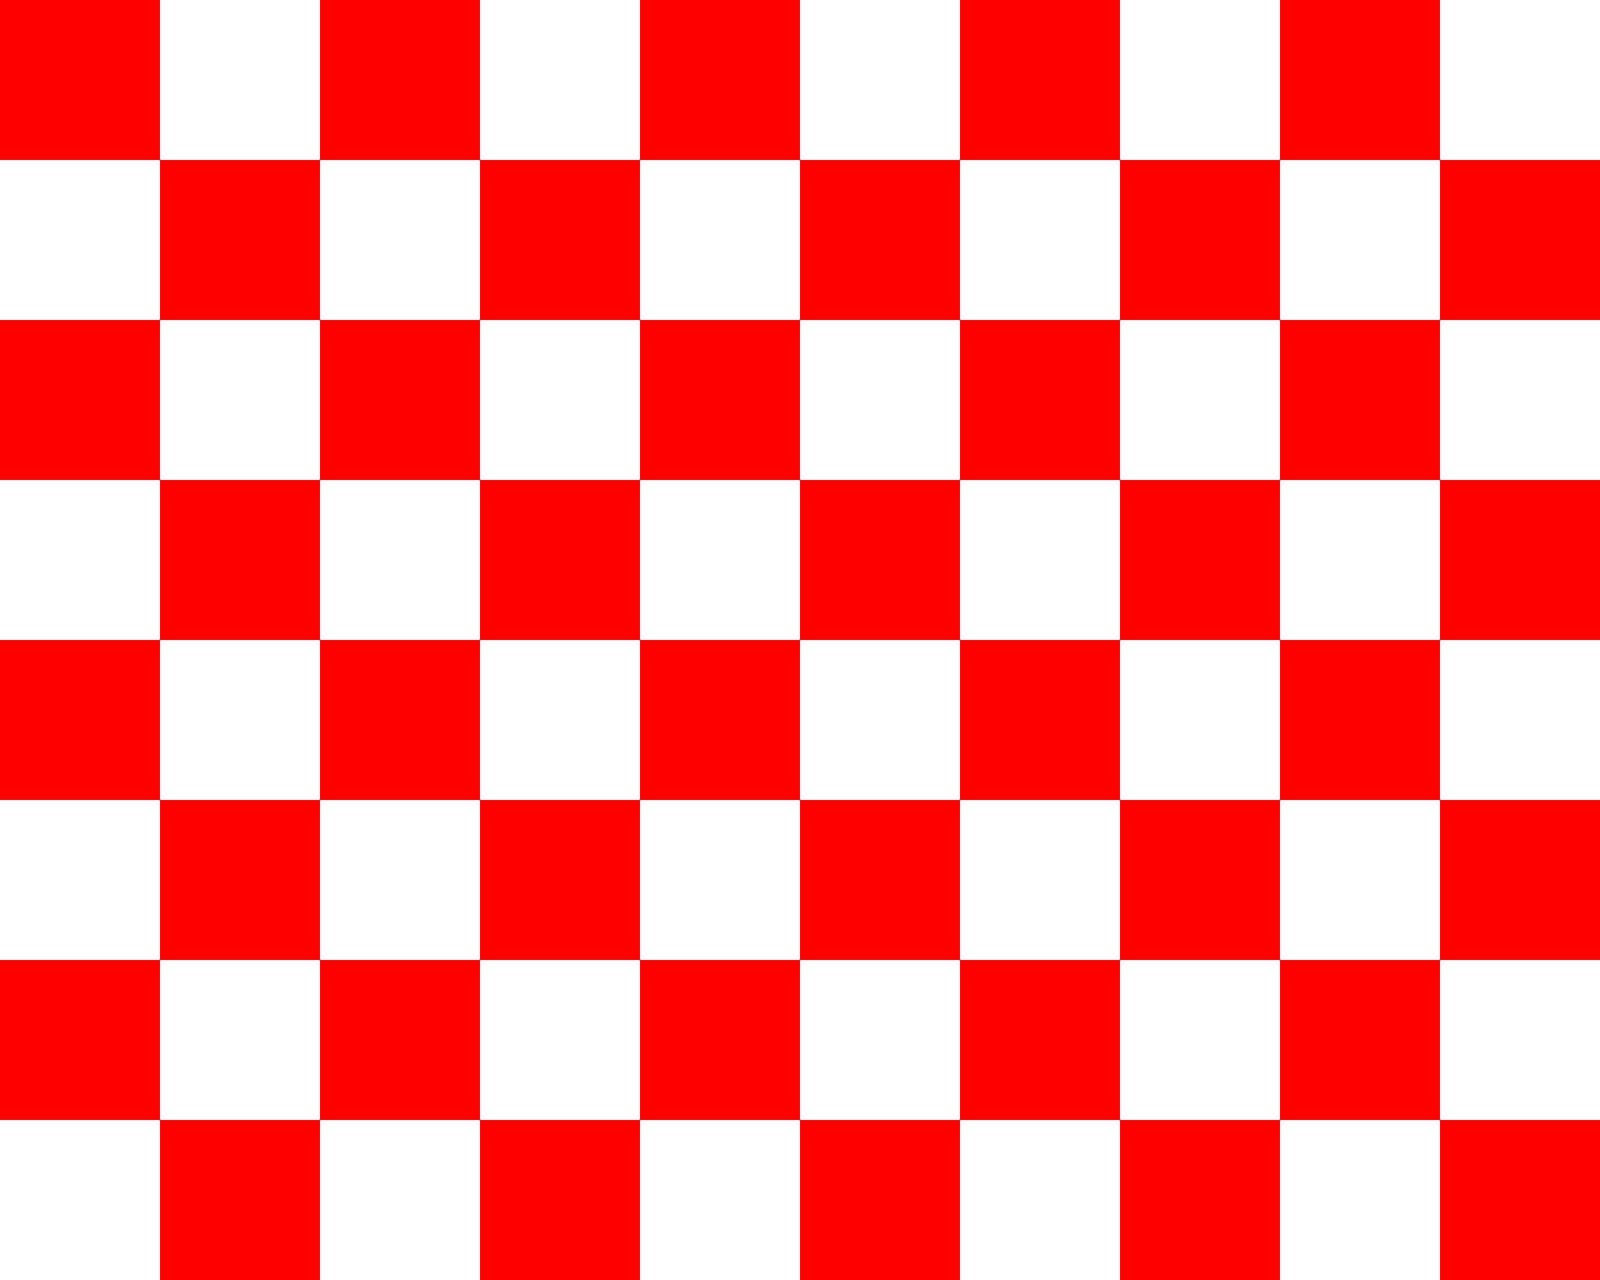 Checkered Wallpaper: Red Checkered Wallpaper